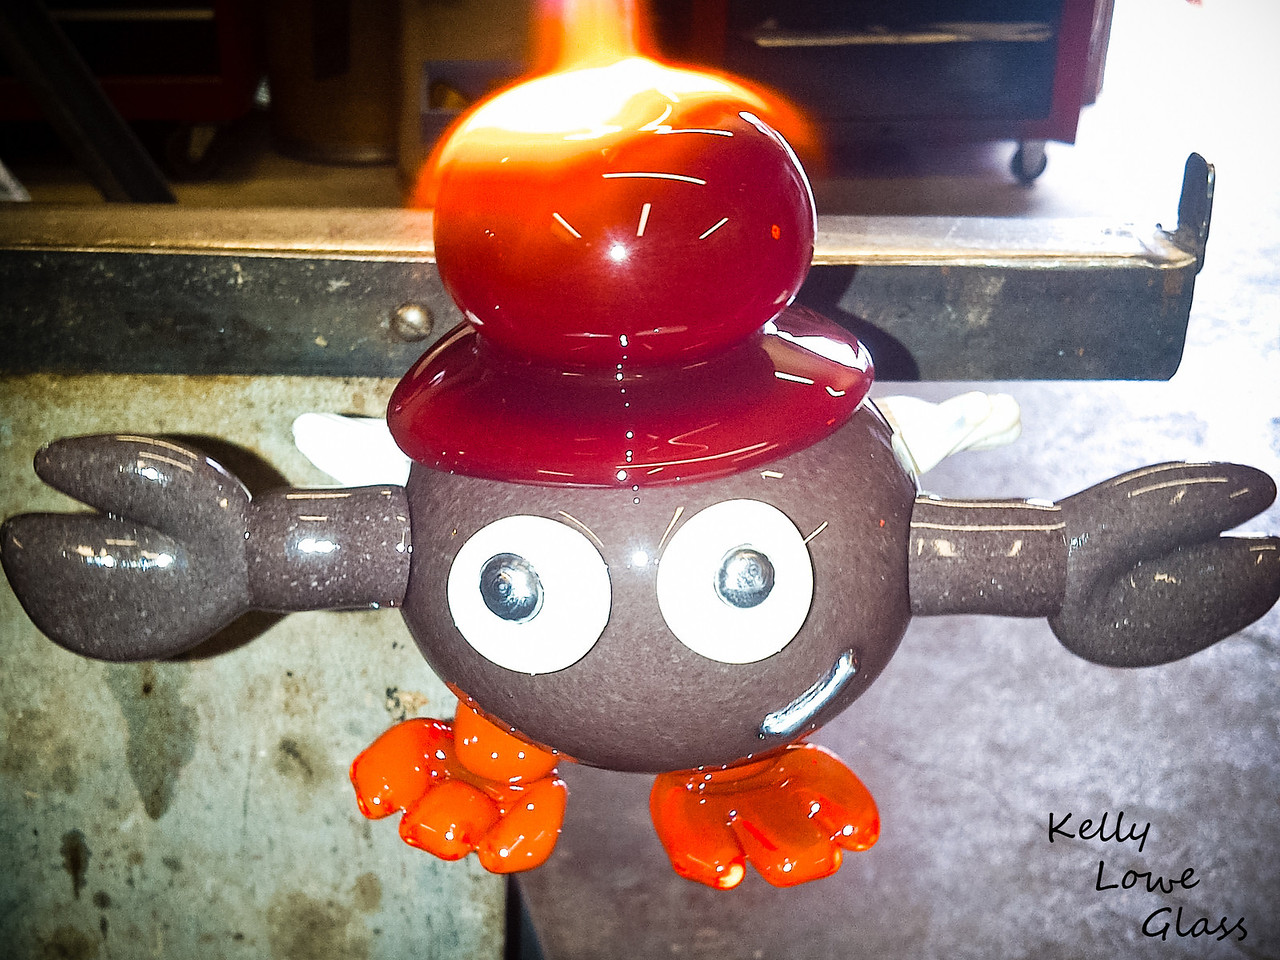 Dustacean<br /> <br /> Kelly Lowe Glass<br /> <br /> Glass blowing